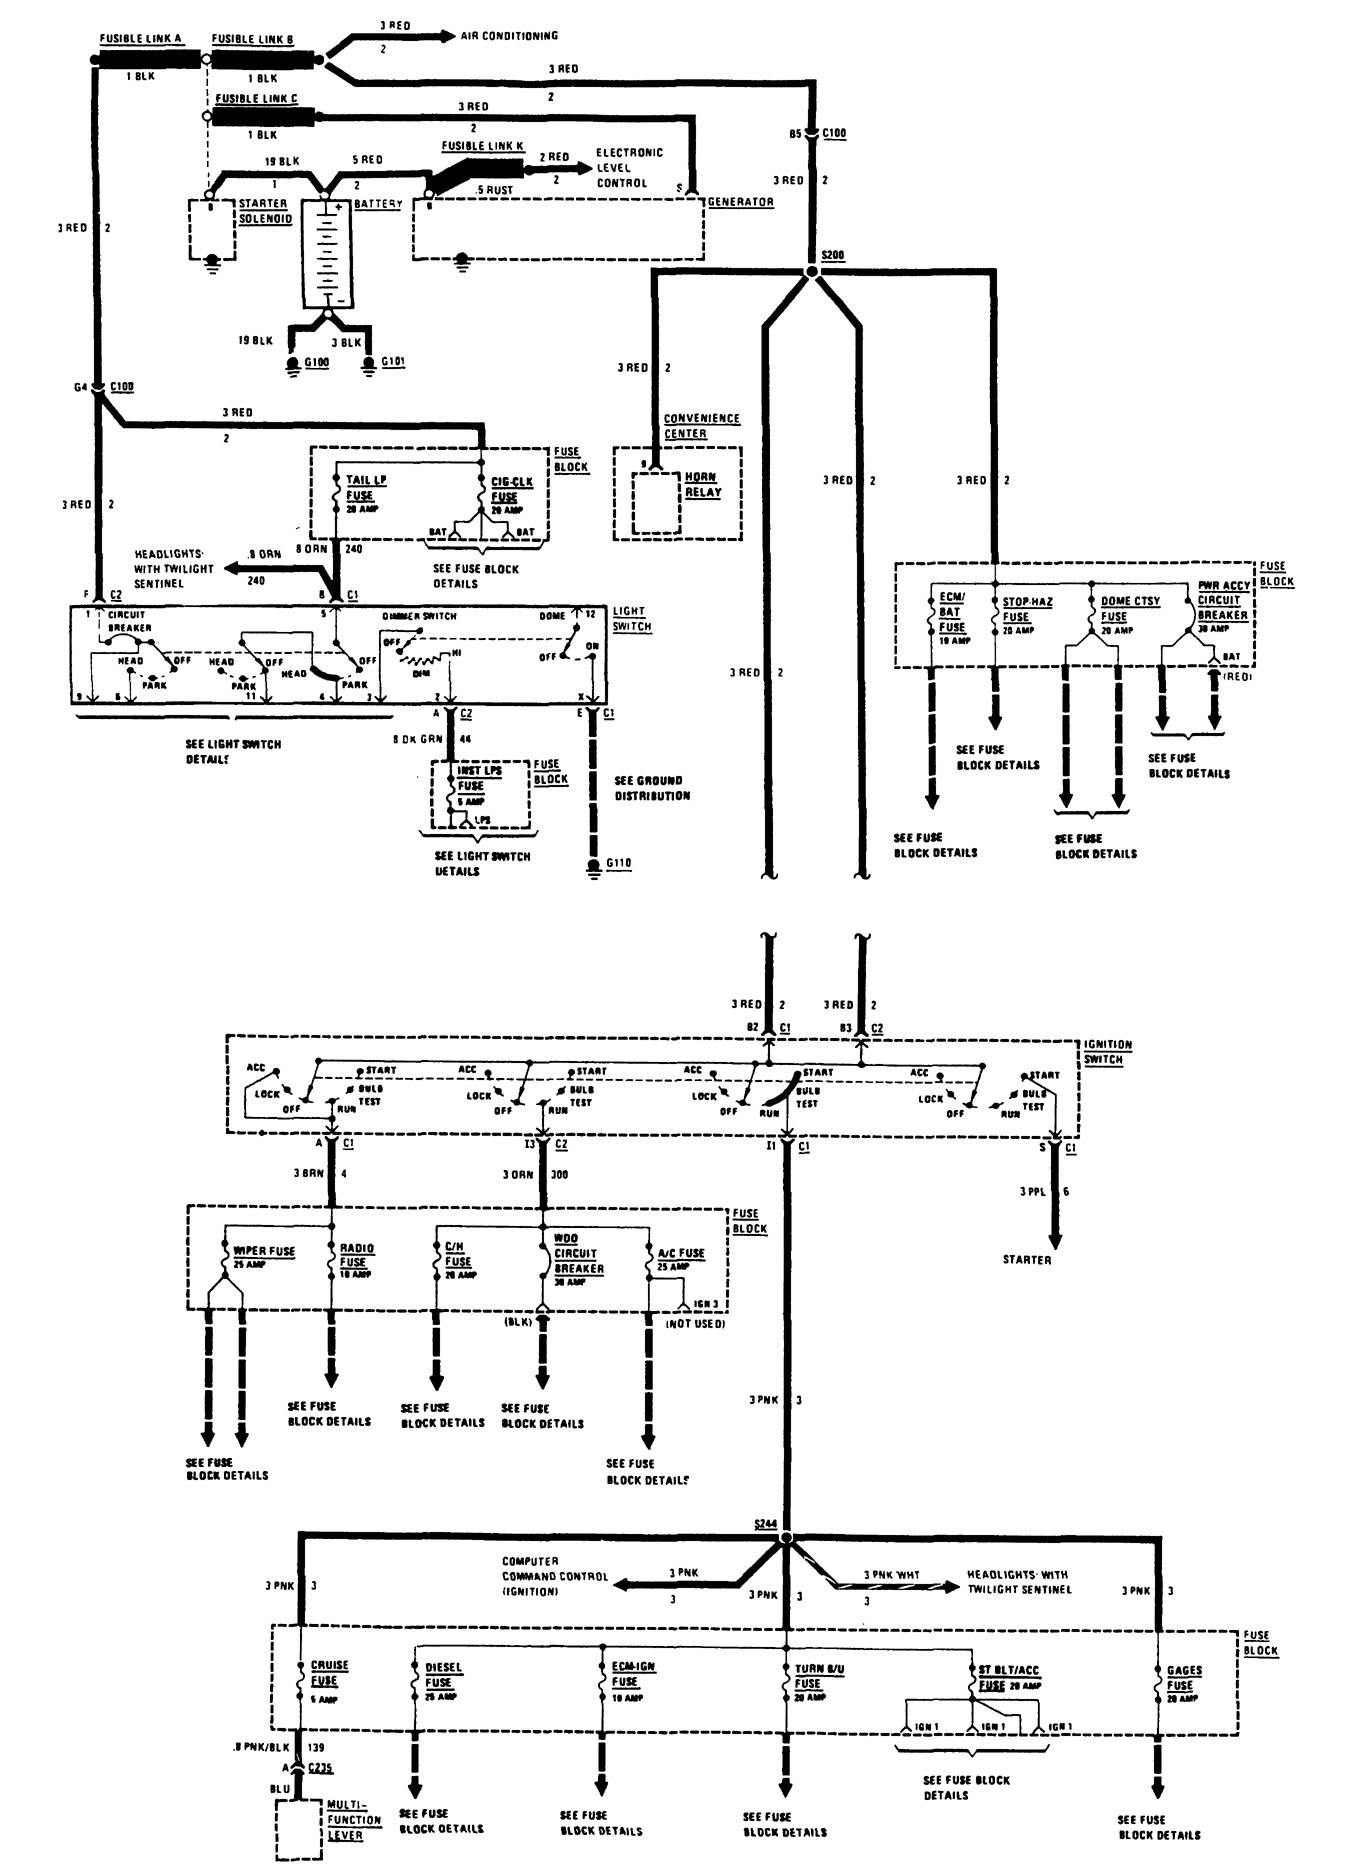 Buick Century  1988  - Wiring Diagrams - Power Distribution